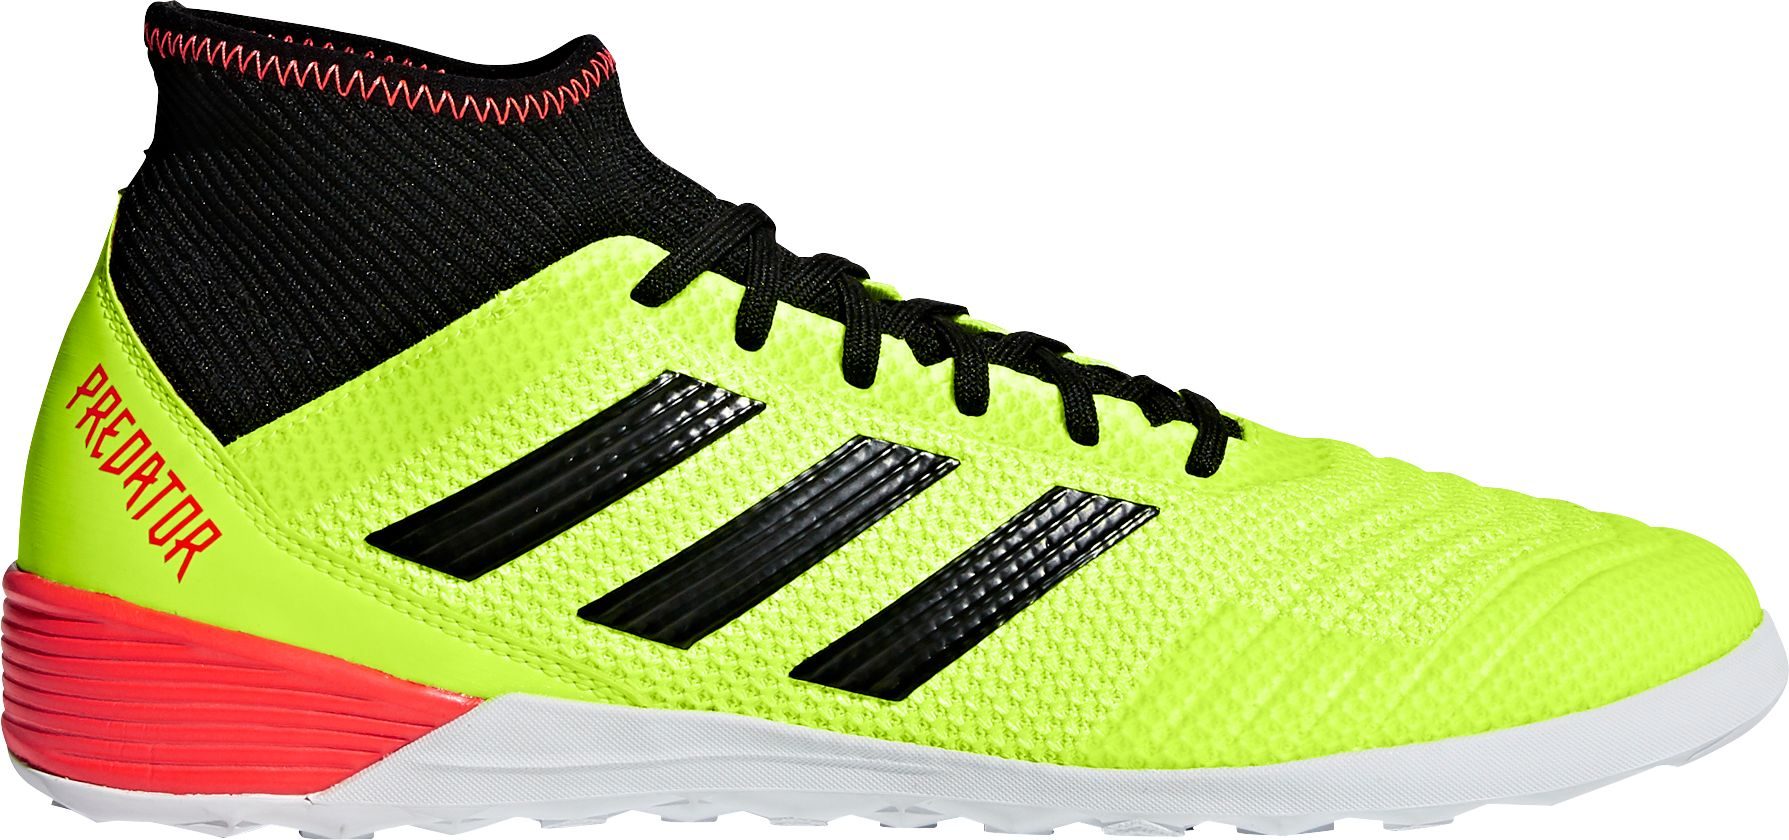 adidas Men's Predator Tango 18.3 Indoor Soccer Shoes, Size: 8.5, Solar Yellow/Black/Solar Red